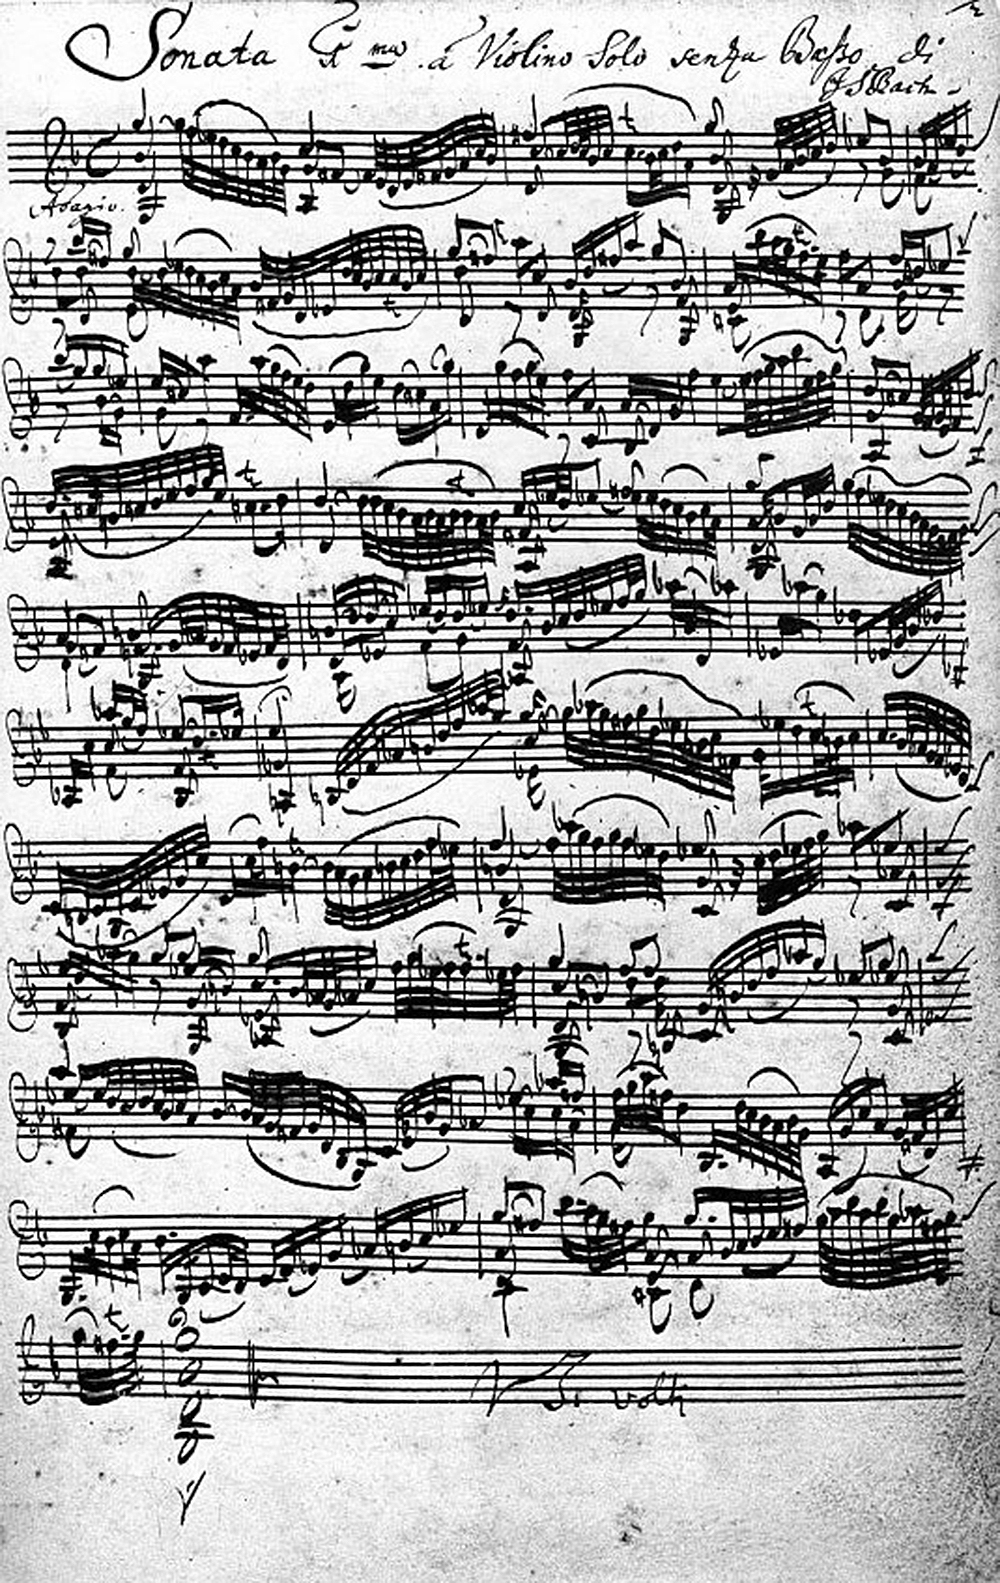 Bach's autograph of the first movement of the Sonata No. 1 in G minor for solo violin. Wikimedia Commons.